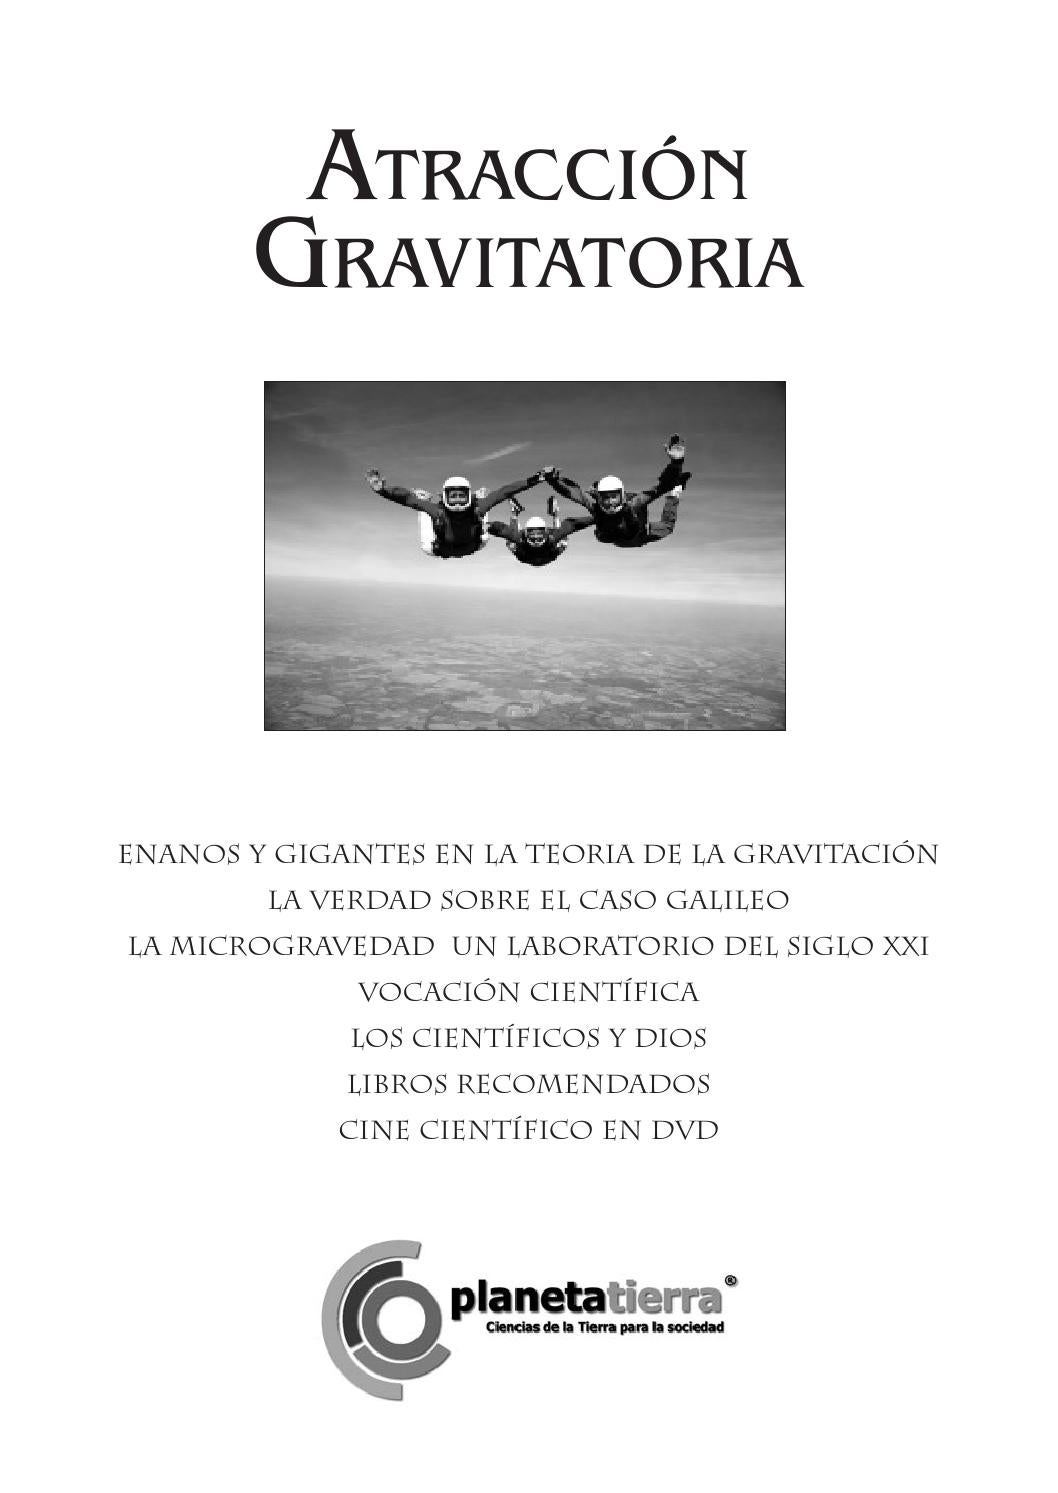 Camino Hormigueras 180 Madrid Atracción Gravitatoria By Retamatch Issuu